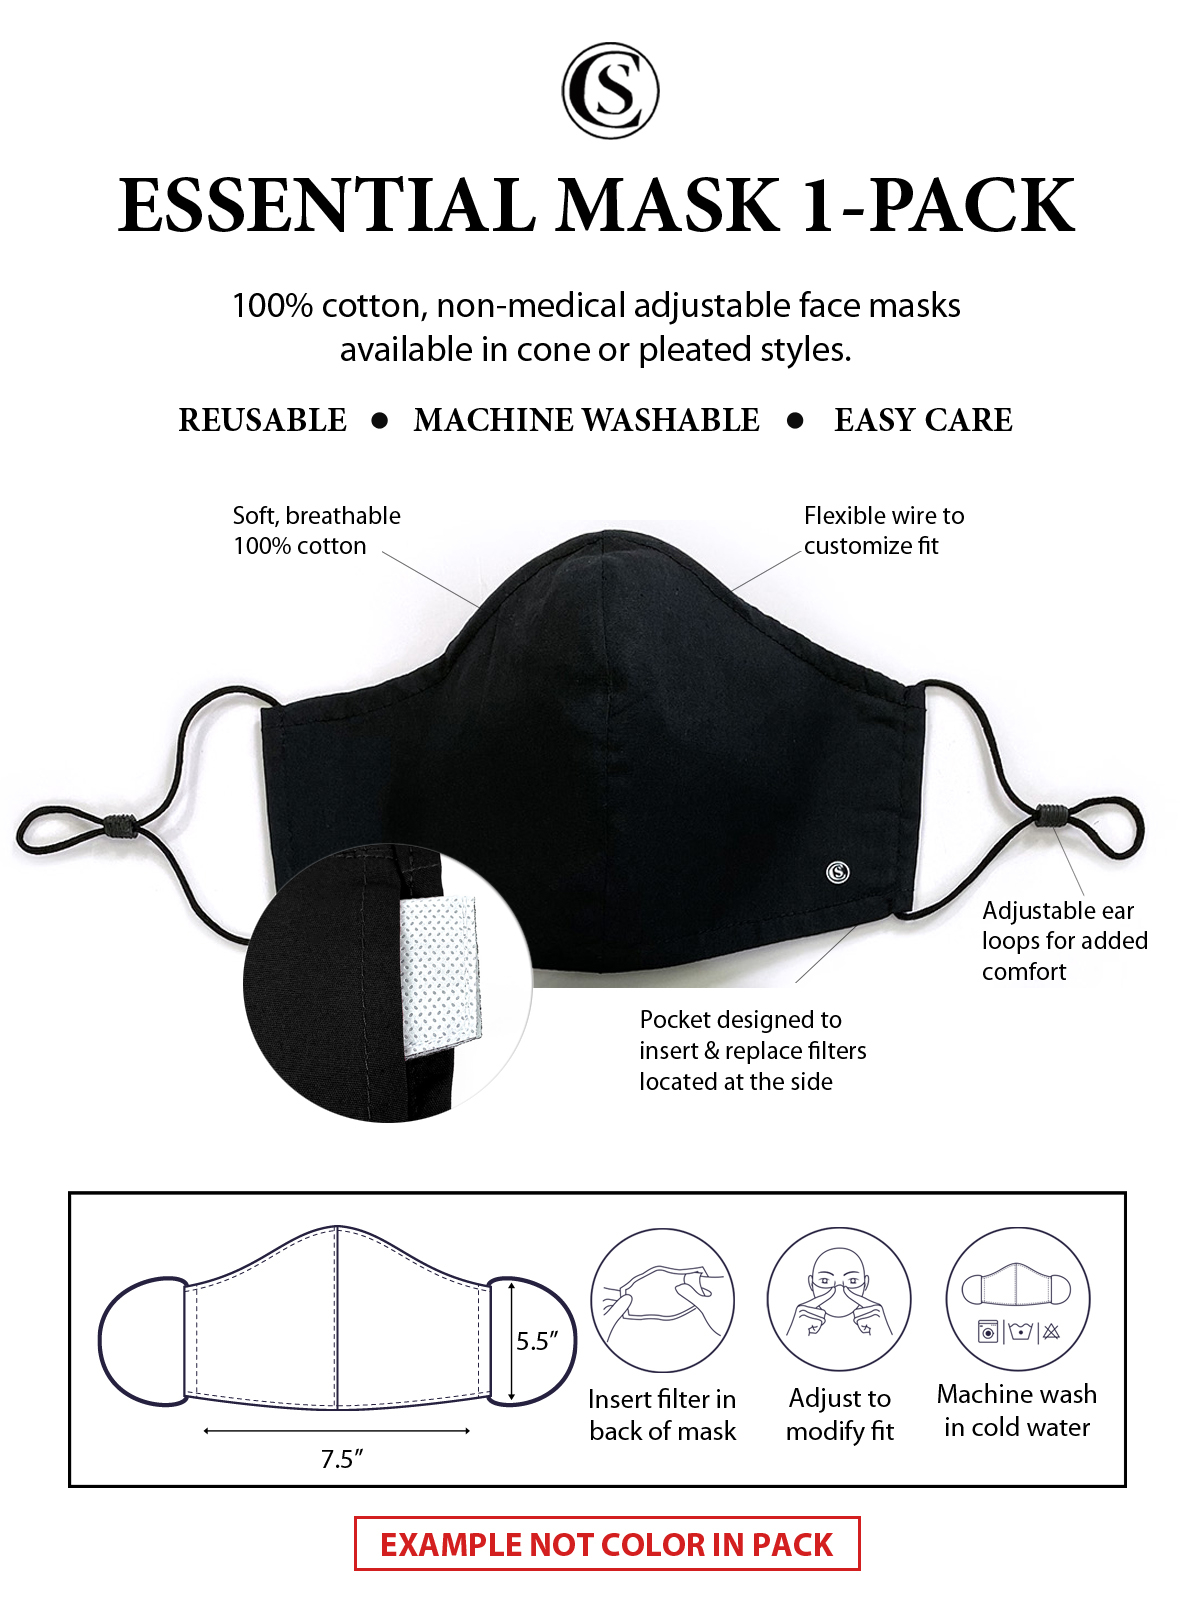 FLORAL CONE MASK 1-PACK